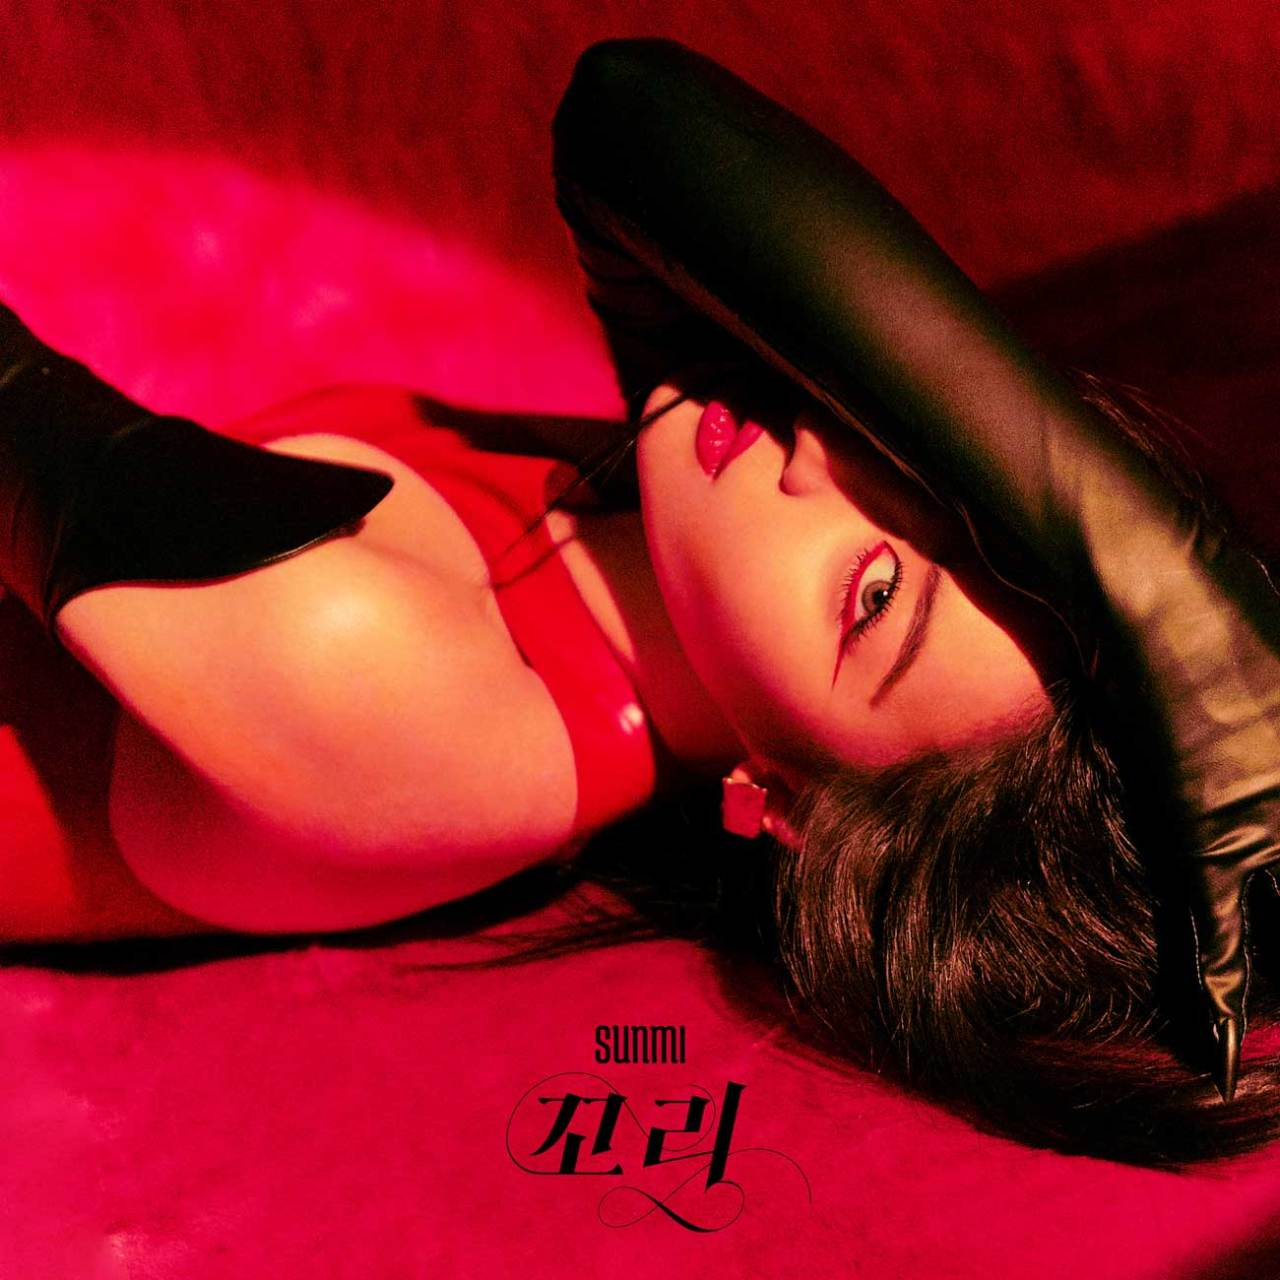 "Sunmi new single ""Tail"" poster (Abyss Company)"